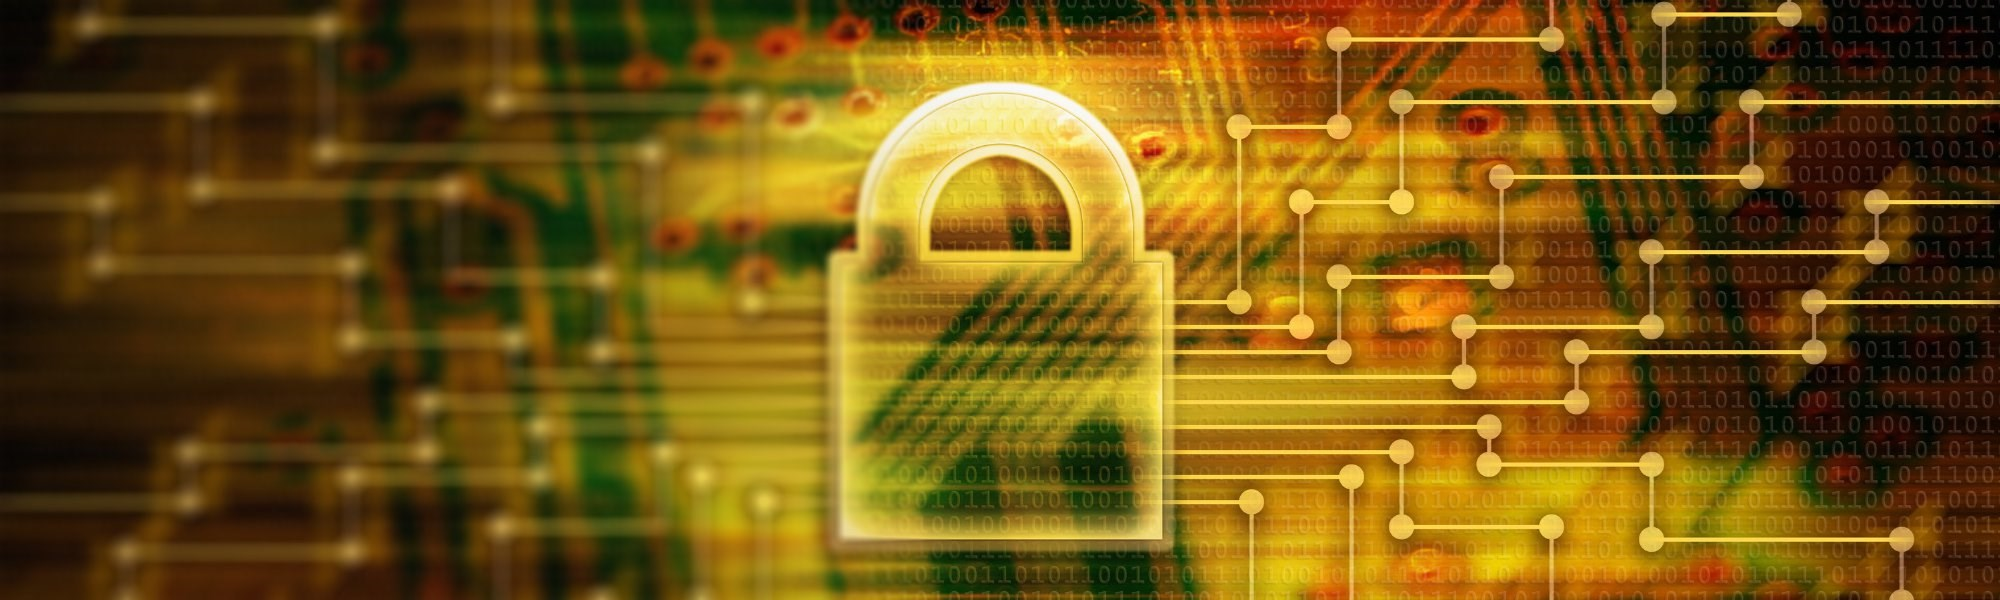 Certificate in cybersecurity uw professional continuing education skip to main content xflitez Gallery